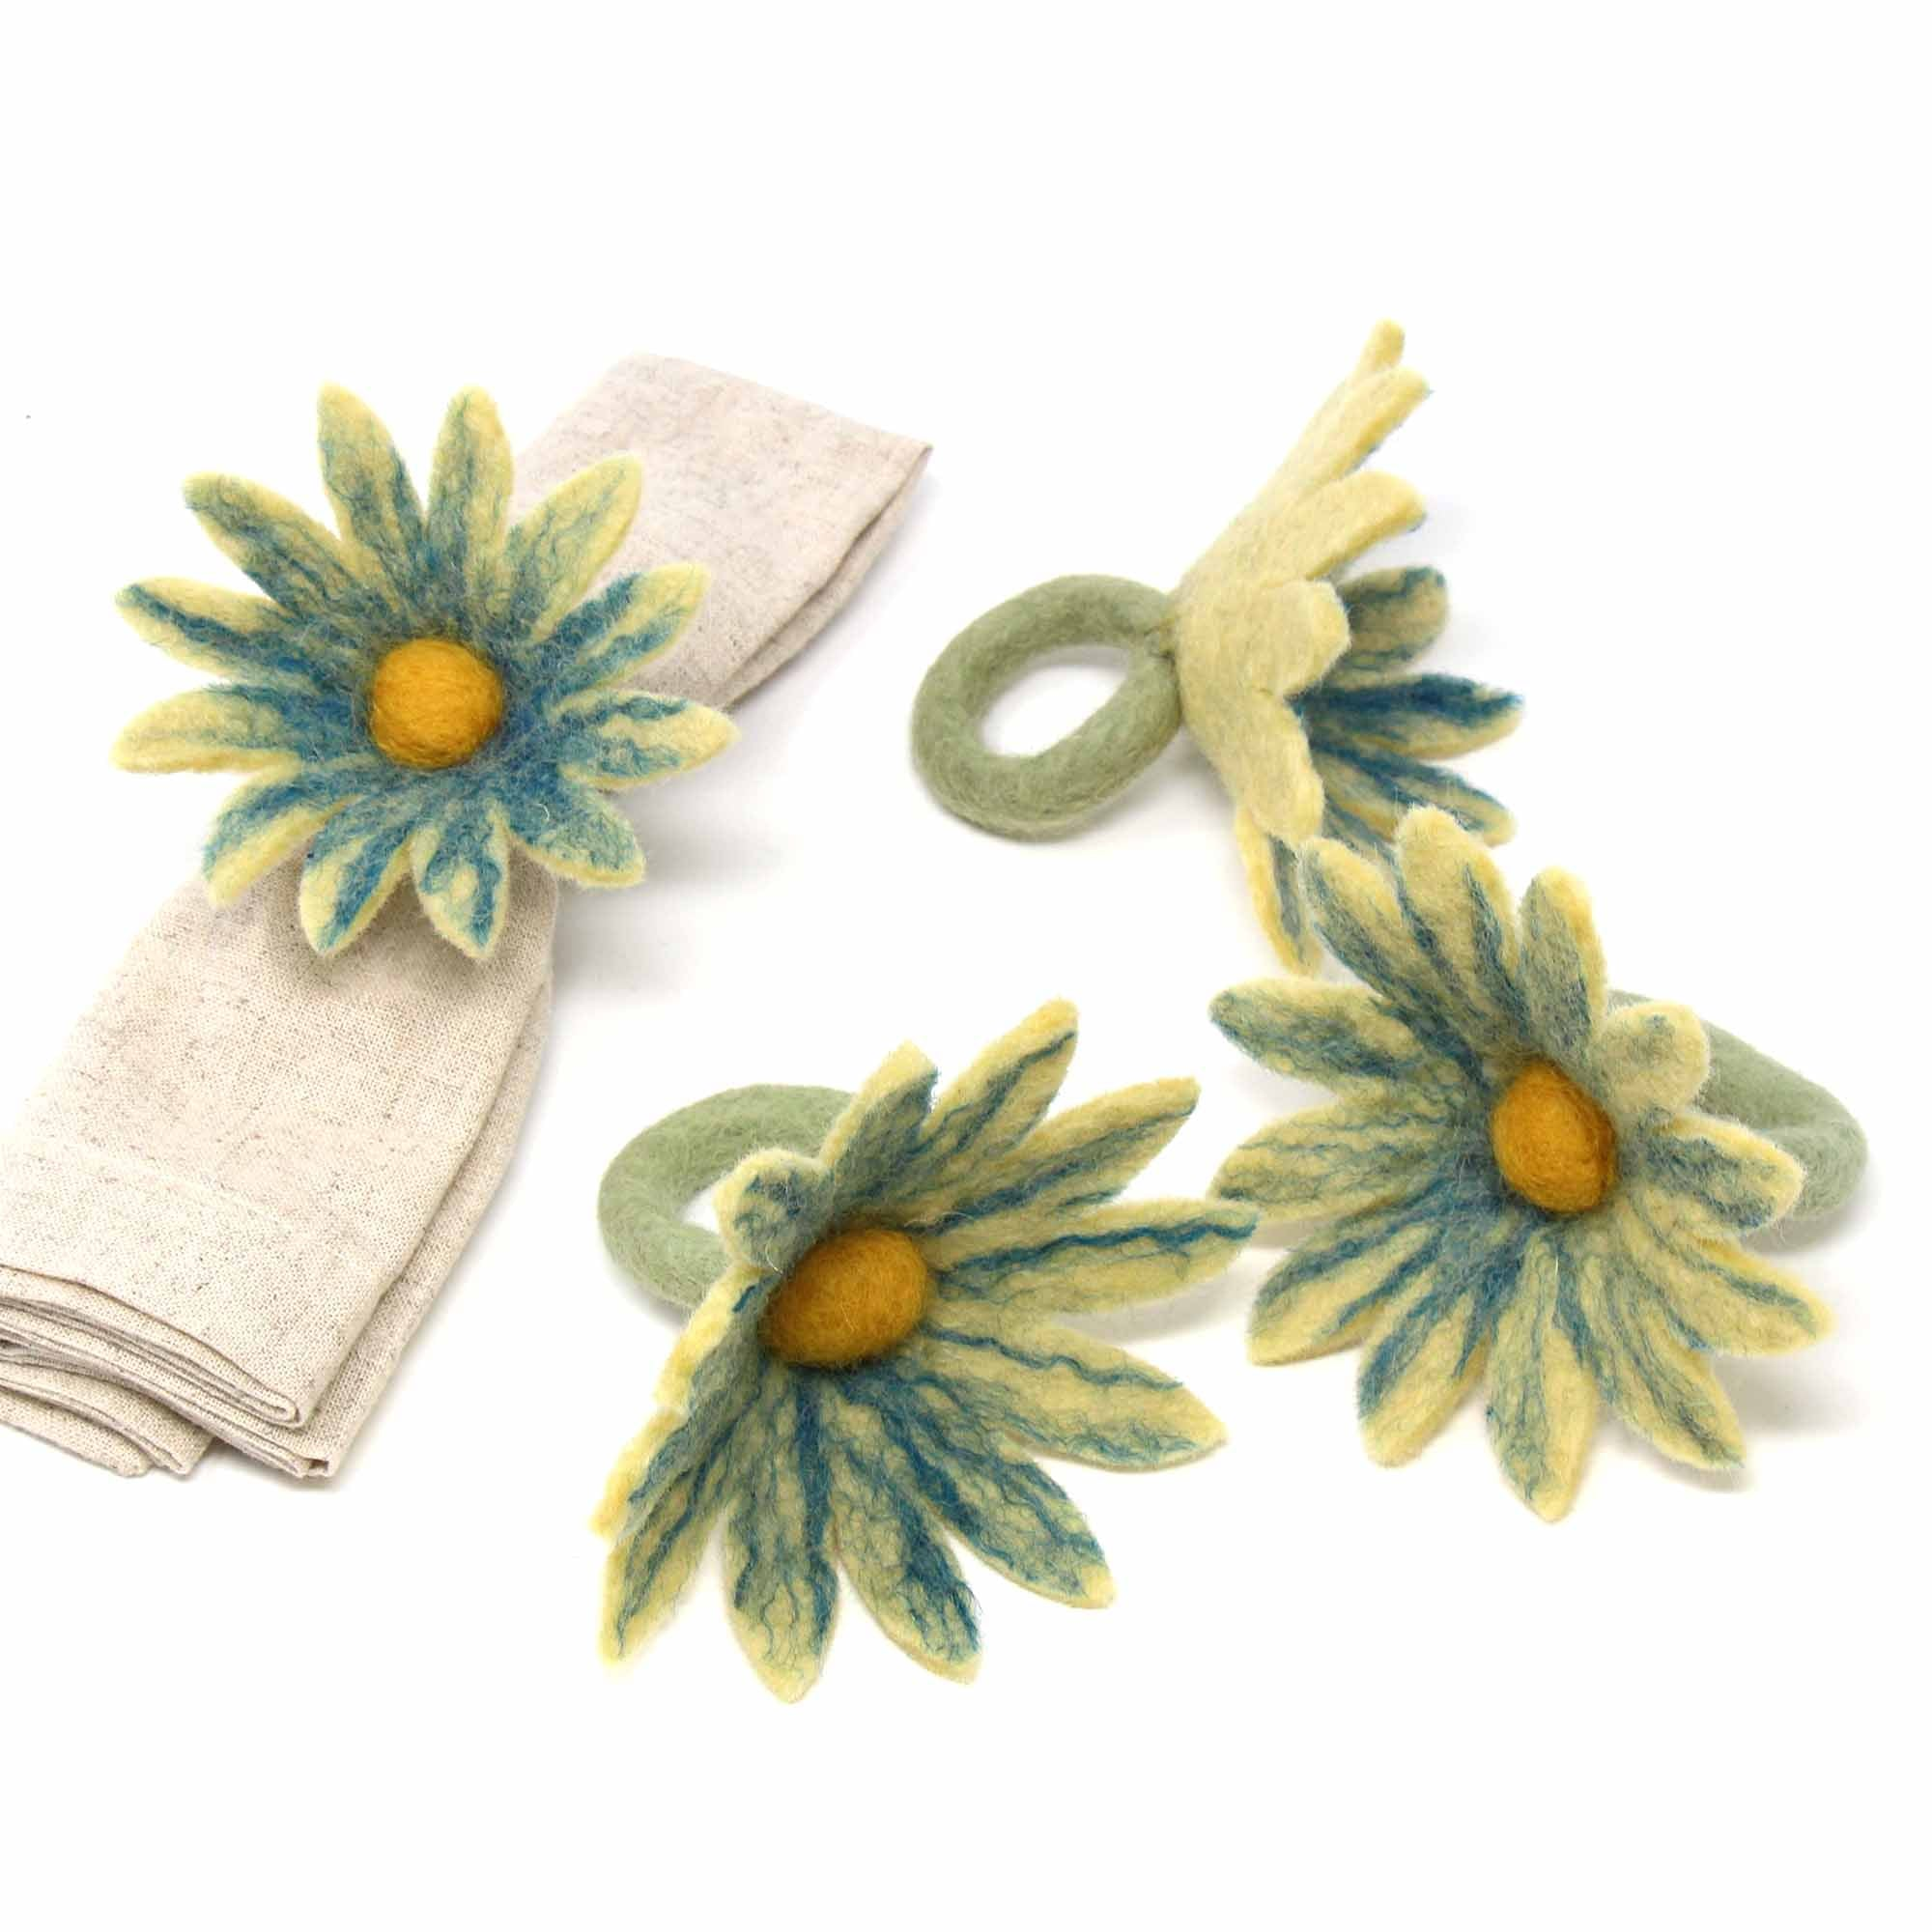 Daisy Napkin Rings - Set of Four Midnight